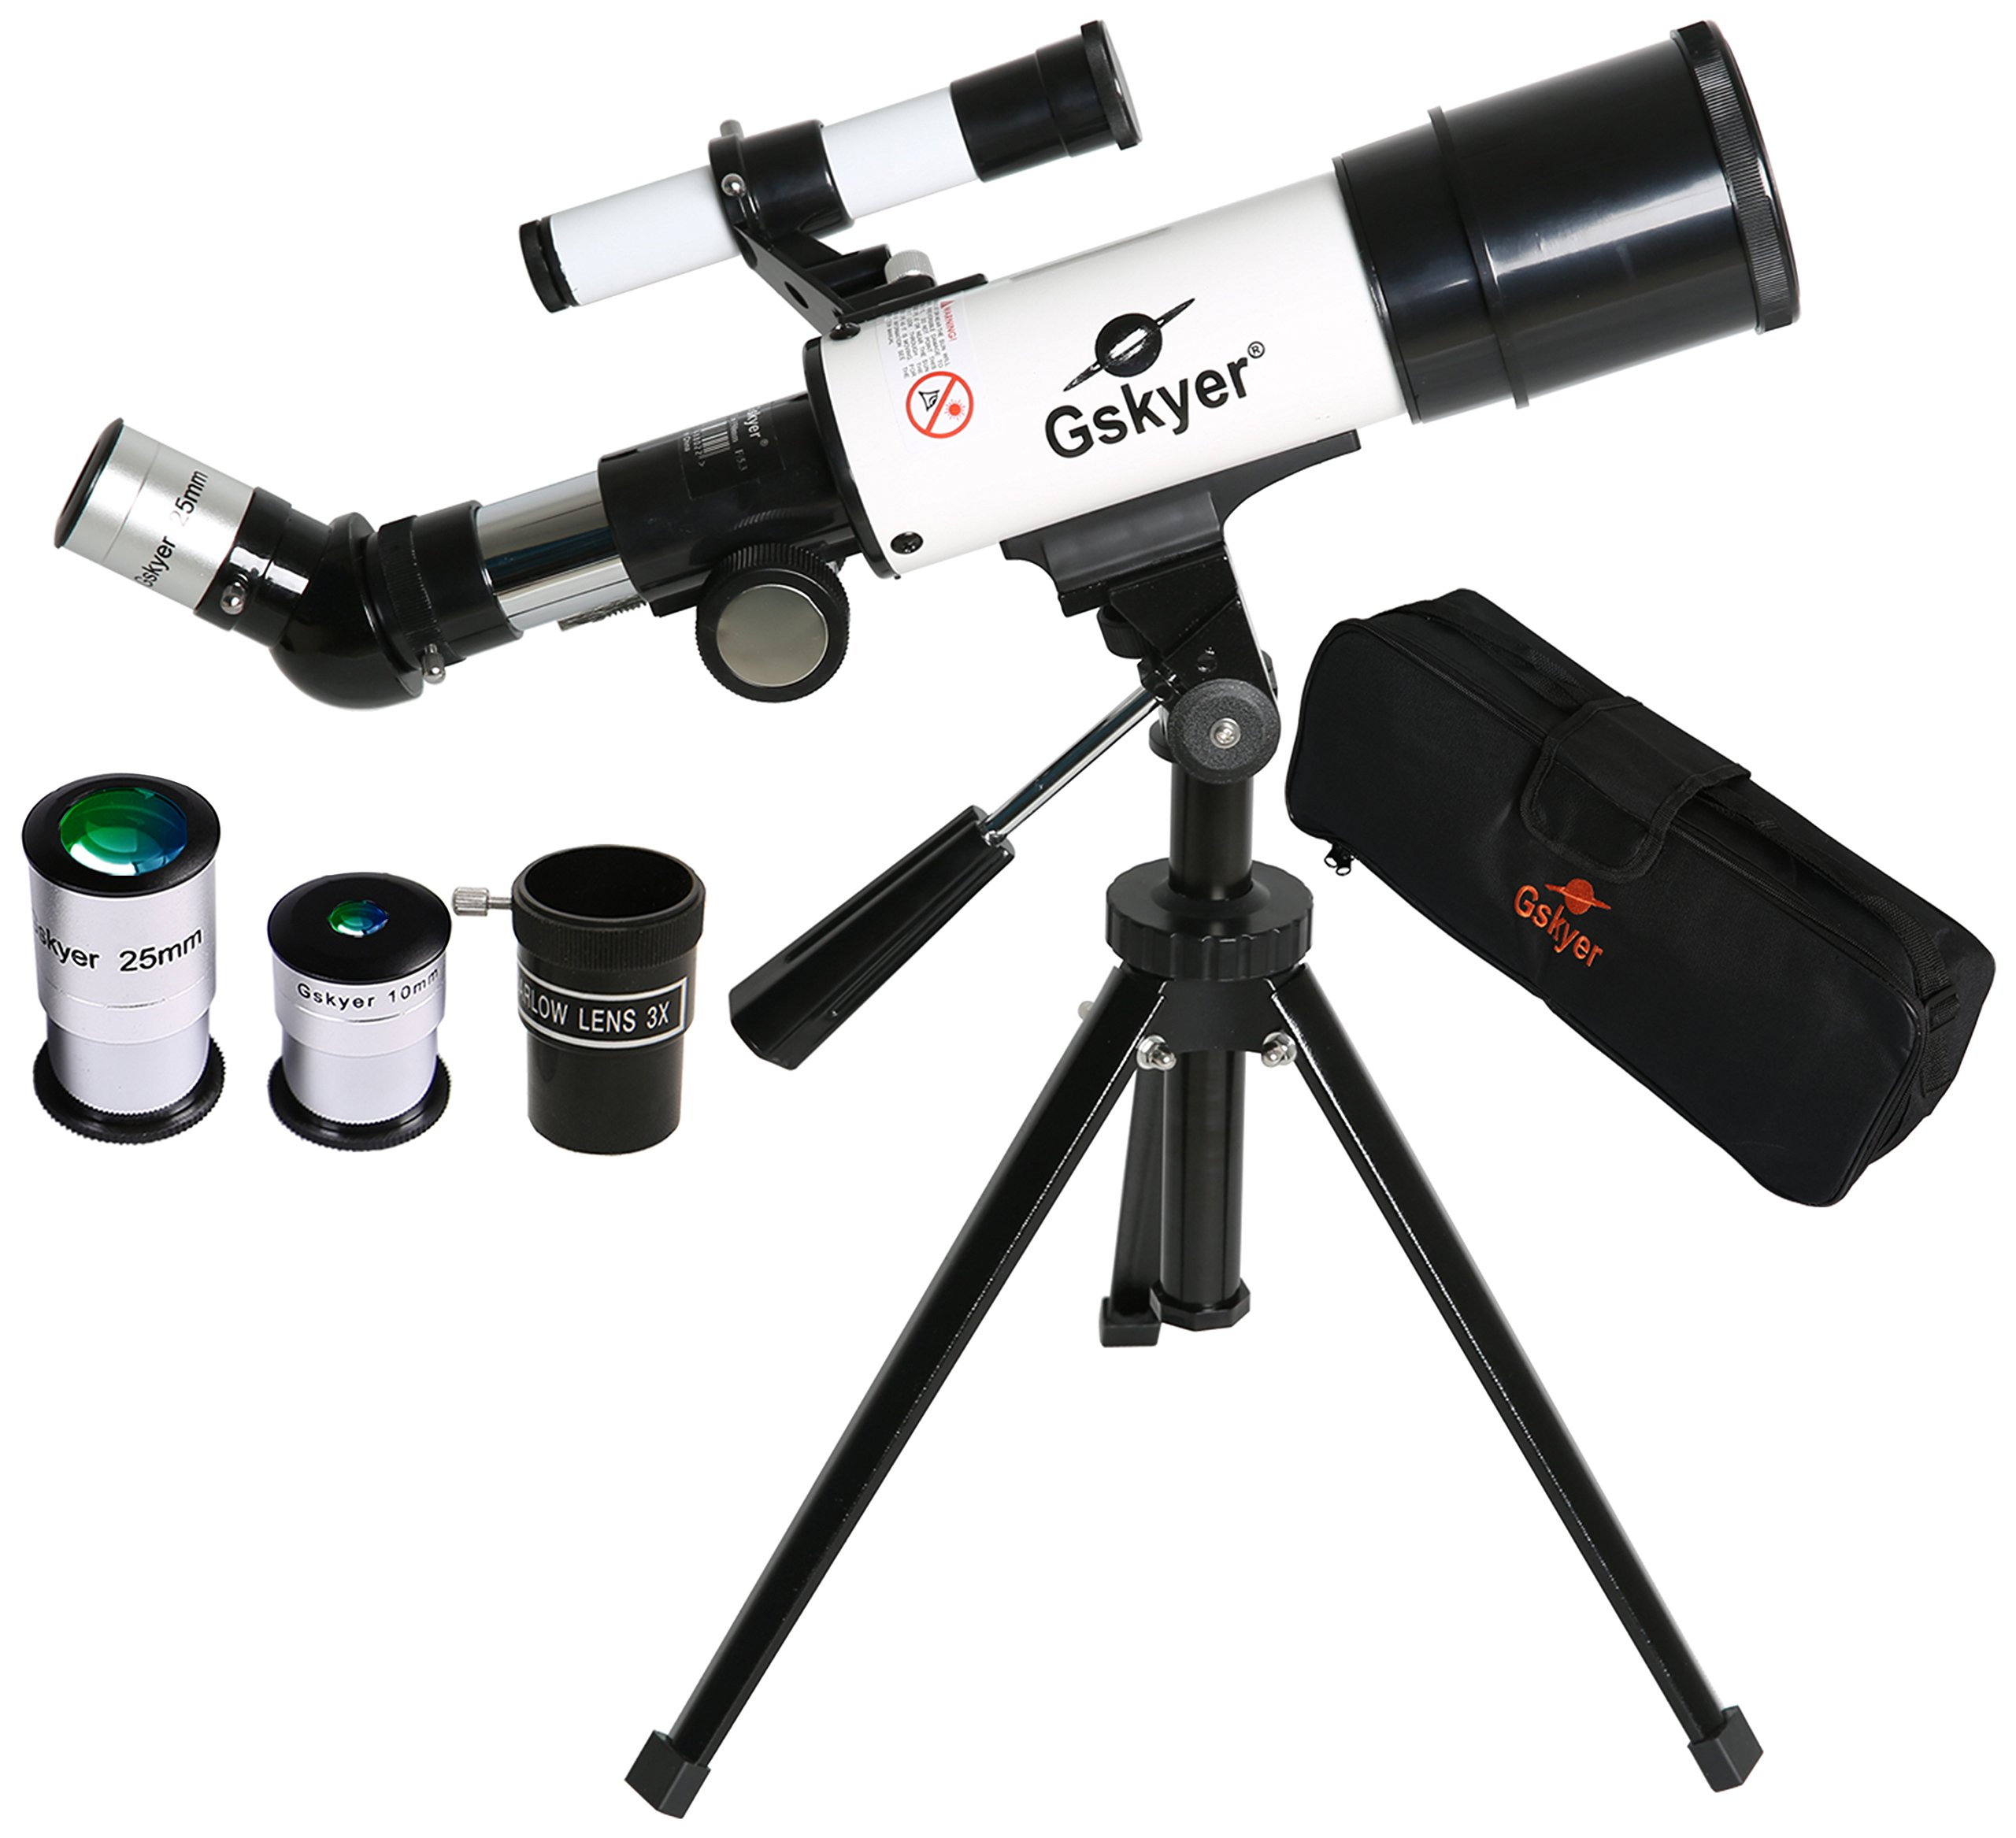 Gskyer Telescope, Travel Refractor Astronomy Telescope with Bluetooth Remote Control - Perfect for Children Educational and Gift